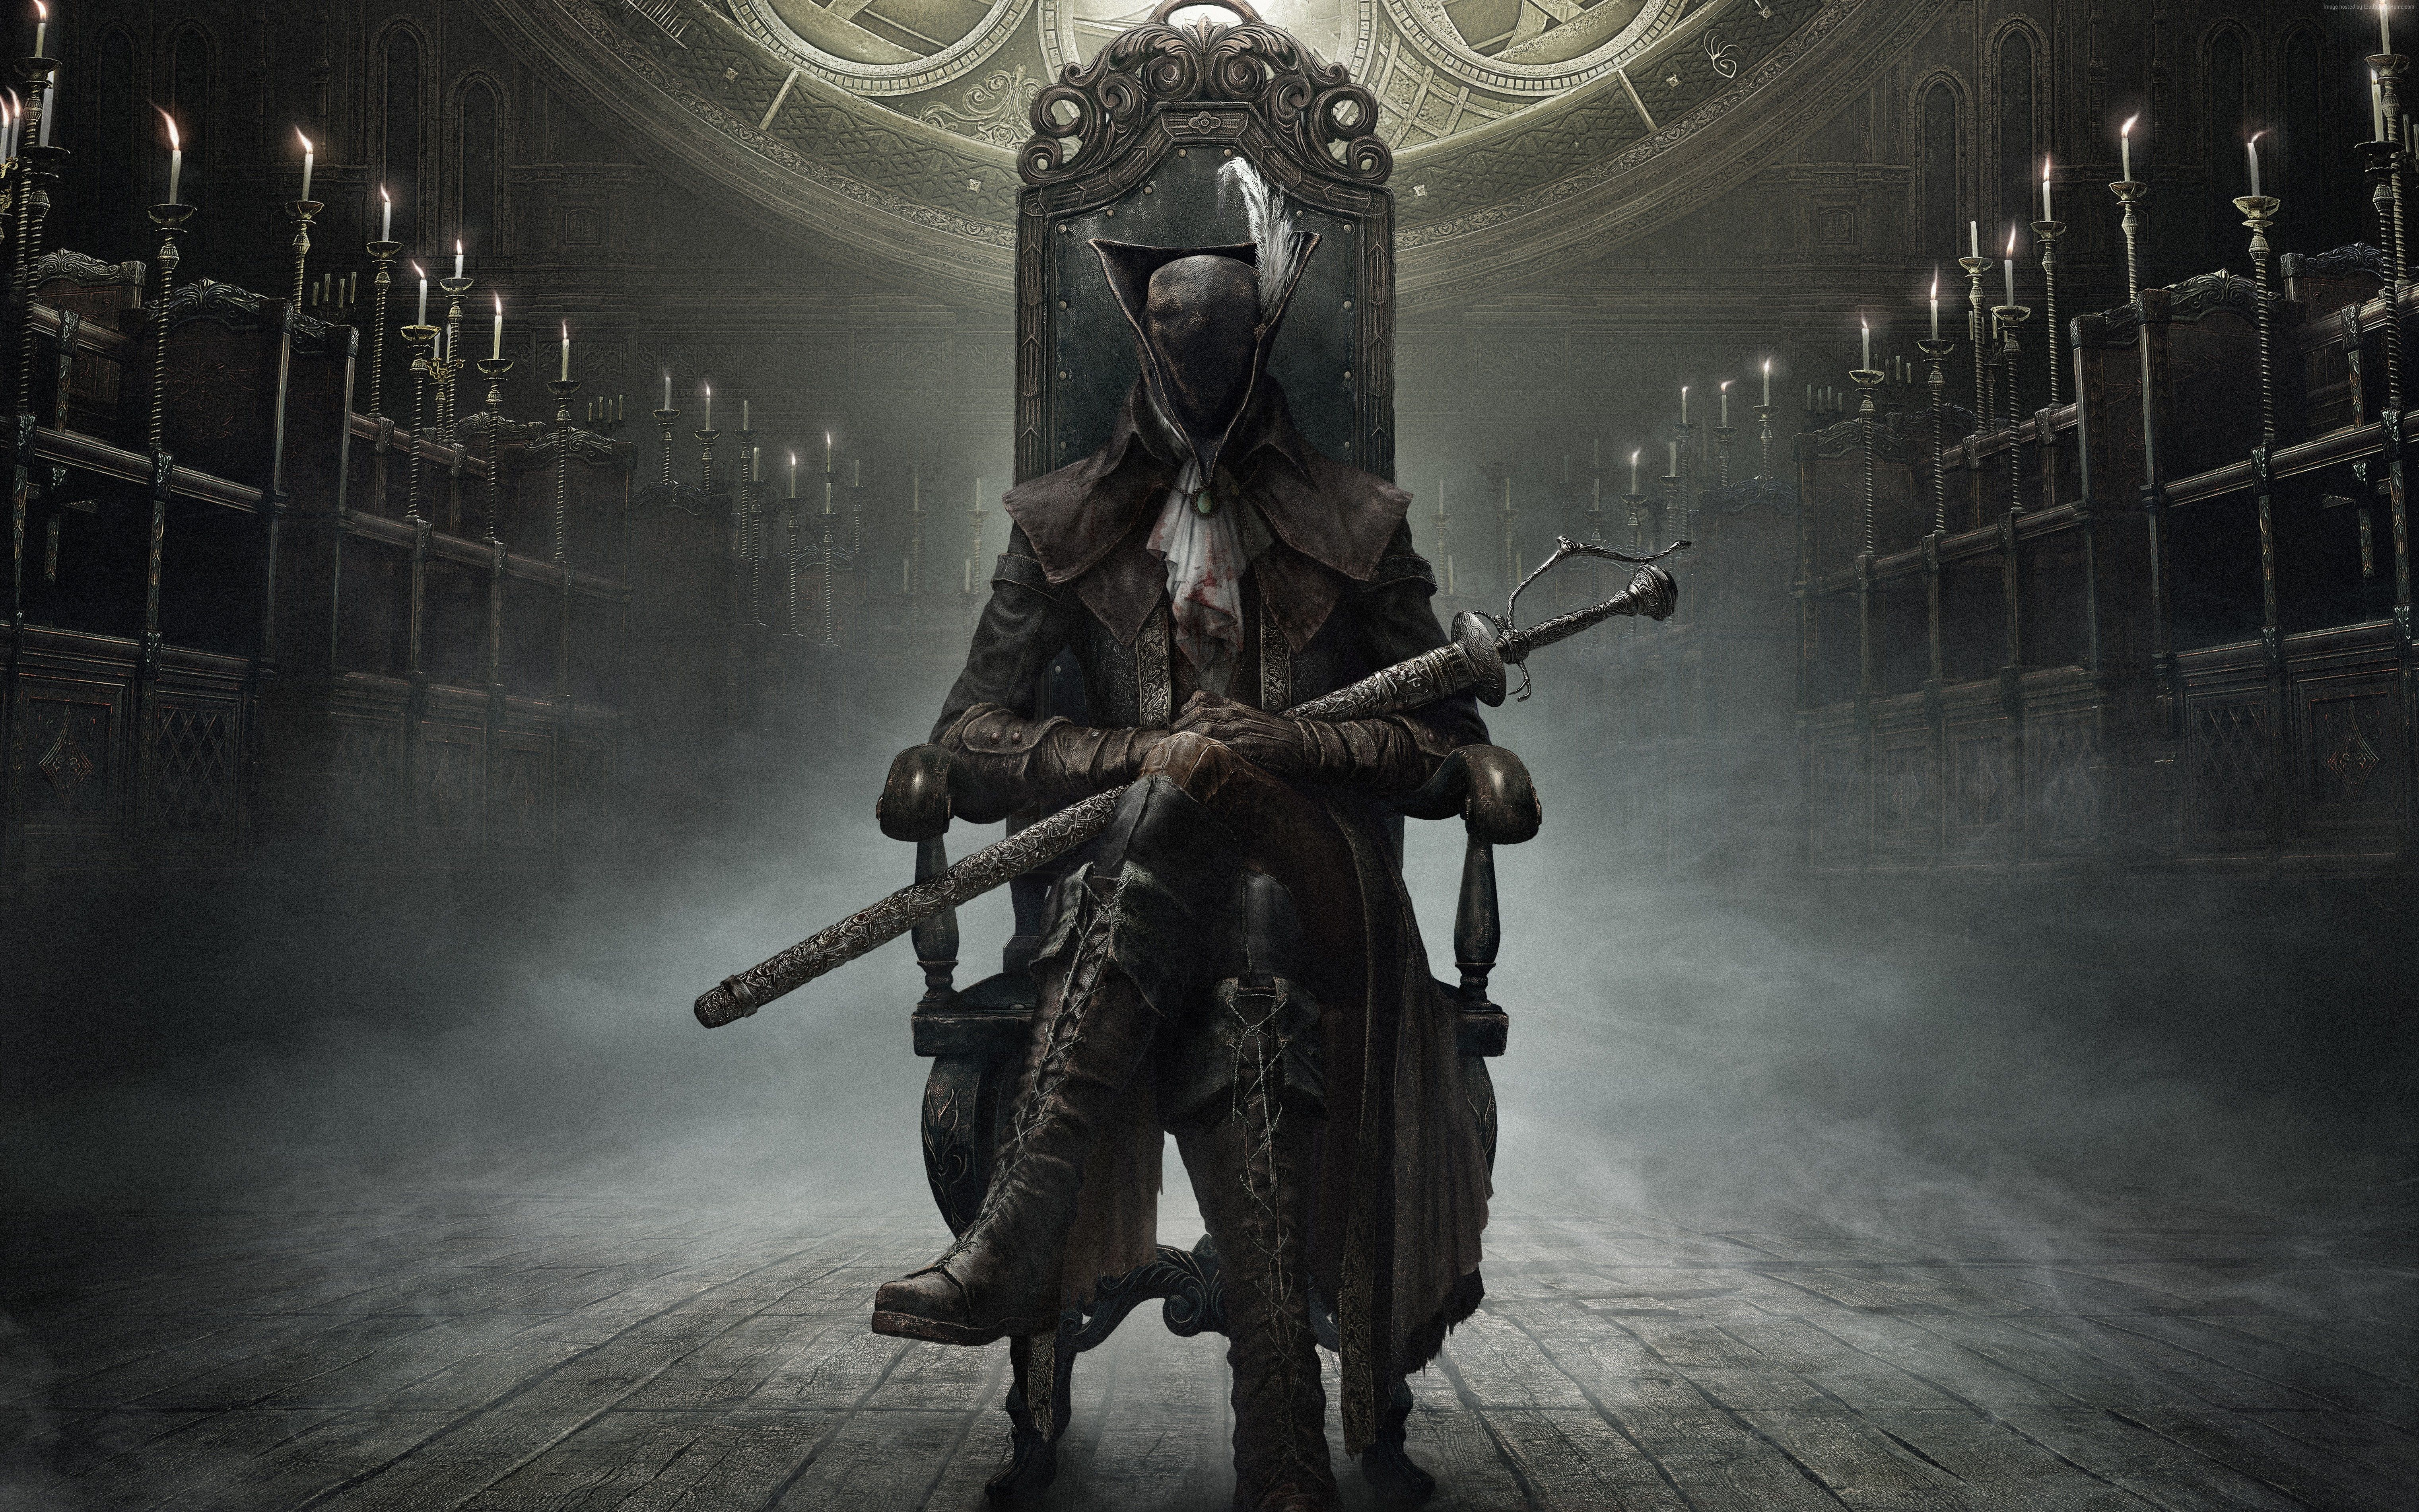 Fantasy Best Game Role Playing Rpg Bloodborne The Old Hunters Hunter Ps4 Action Horror 5k Wallpaper Hdwall Bloodborne Old Hunter Video Game Posters